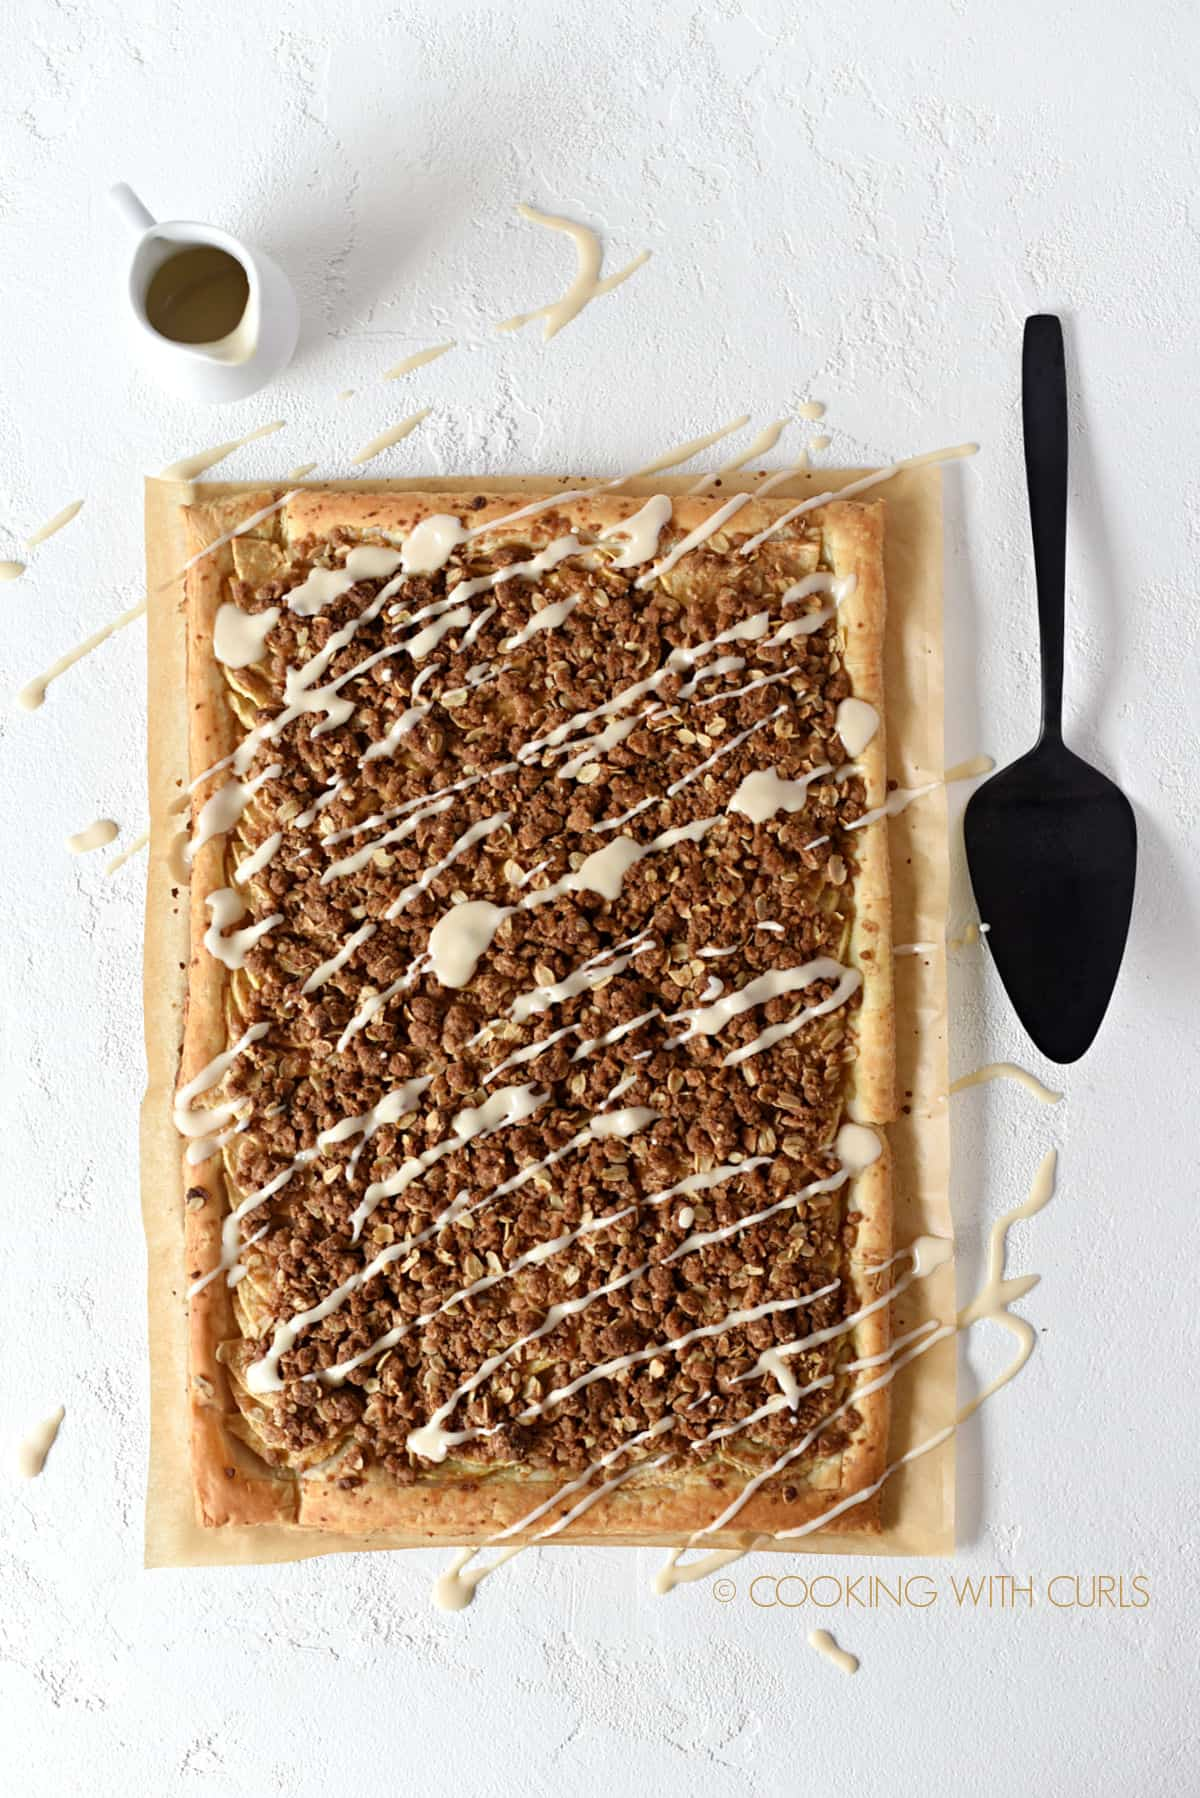 looking down on an Apple Streusel Pizza made with puff pastry and topped with a sweet glaze.